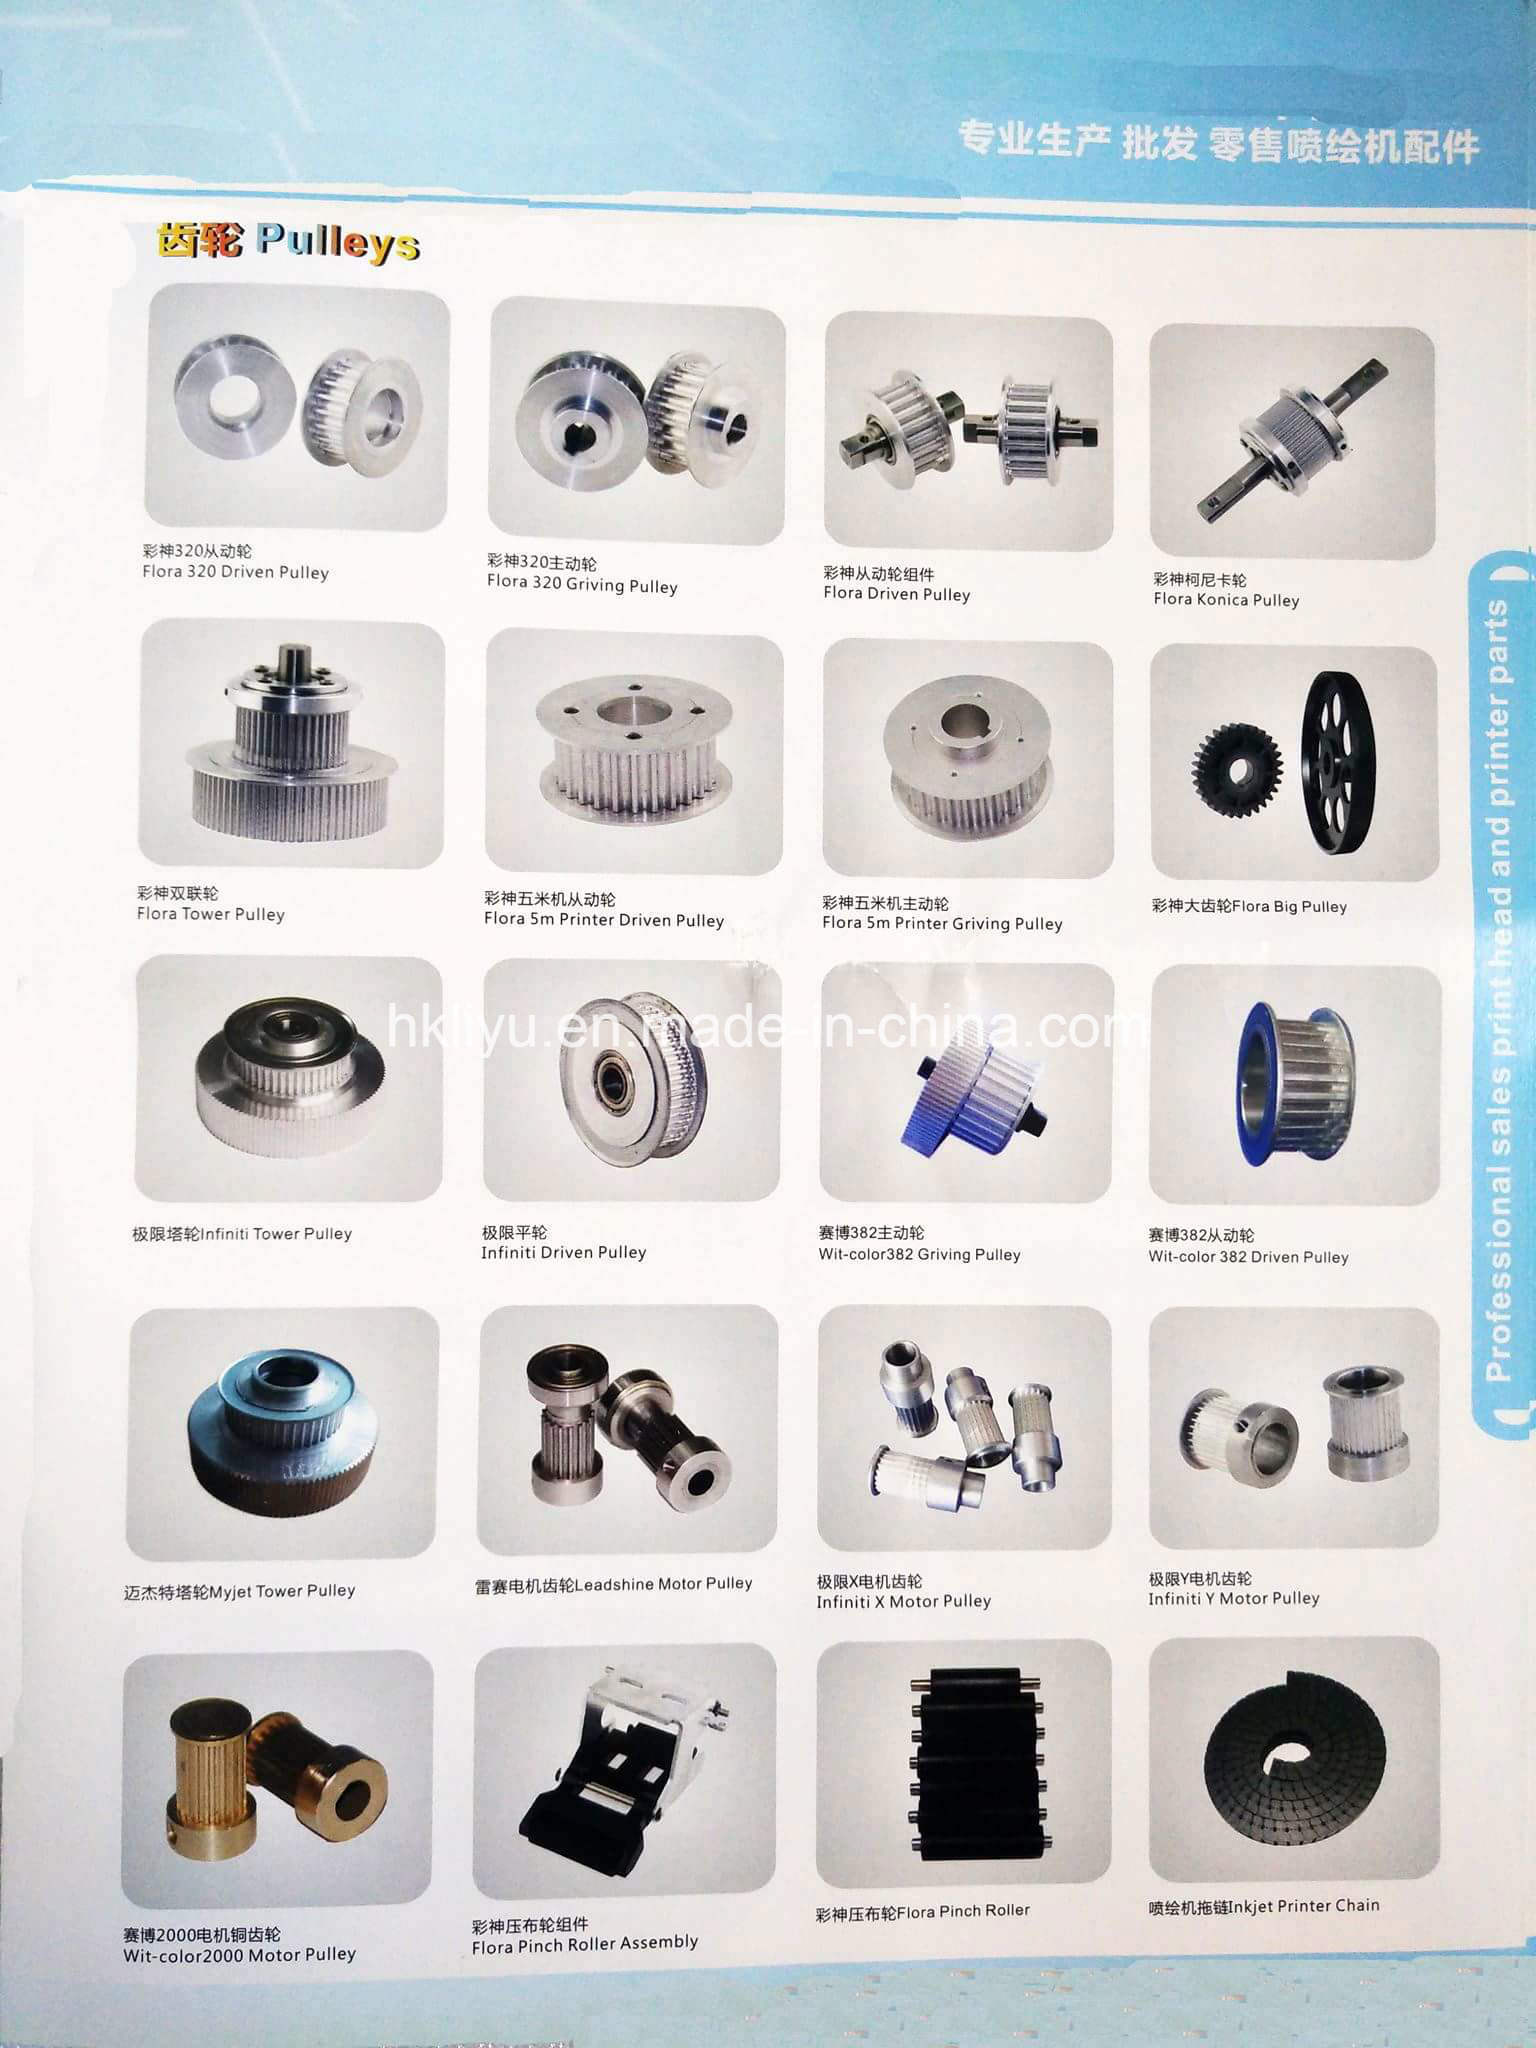 Large Format Printer Spare Parts